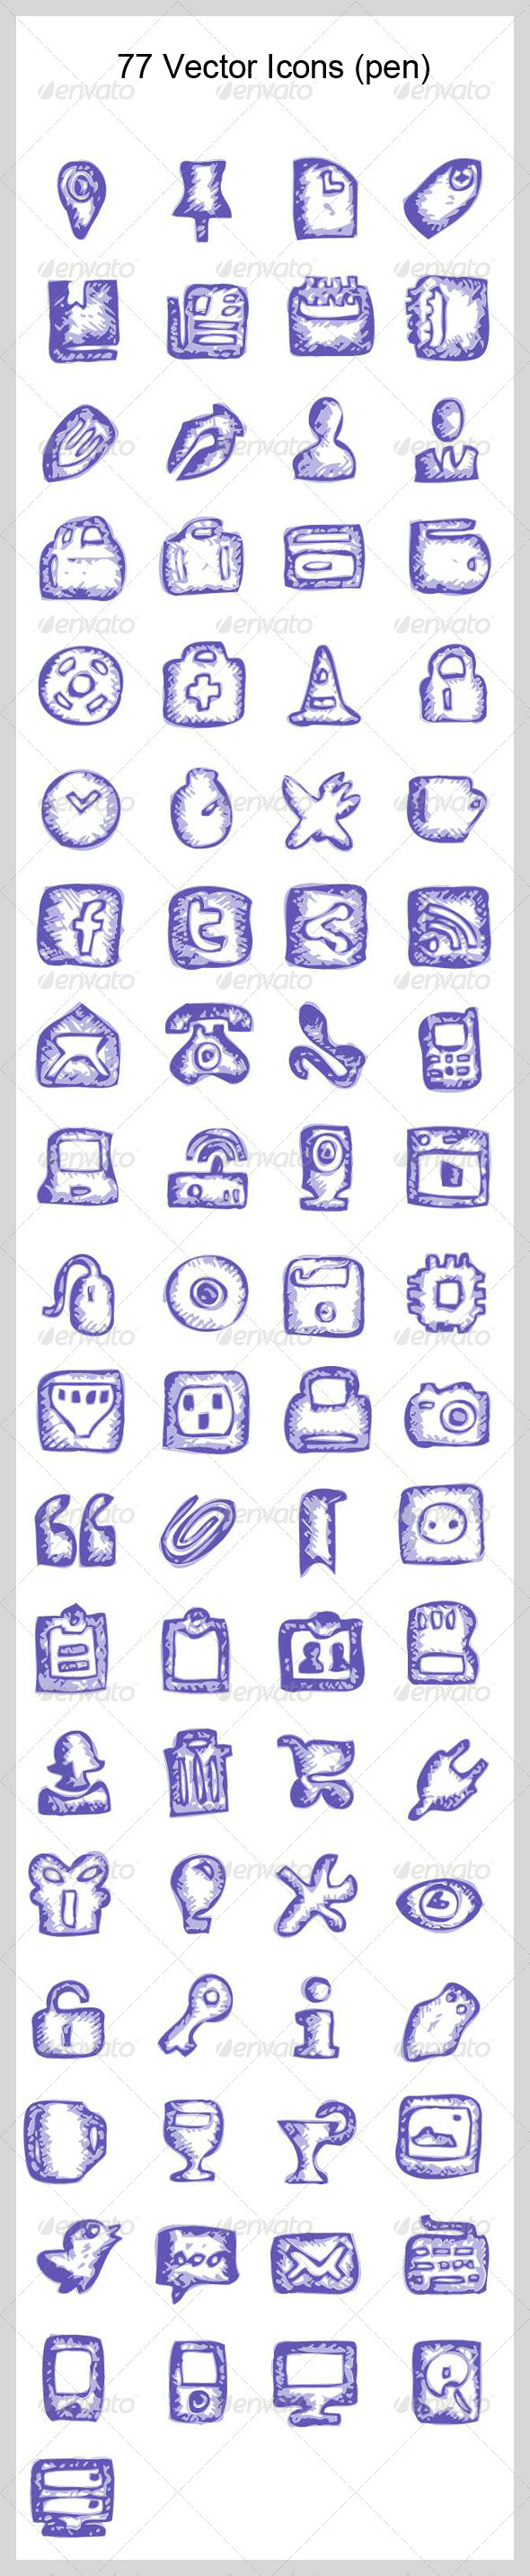 GraphicRiver 77 Vector Icons pen 3885731